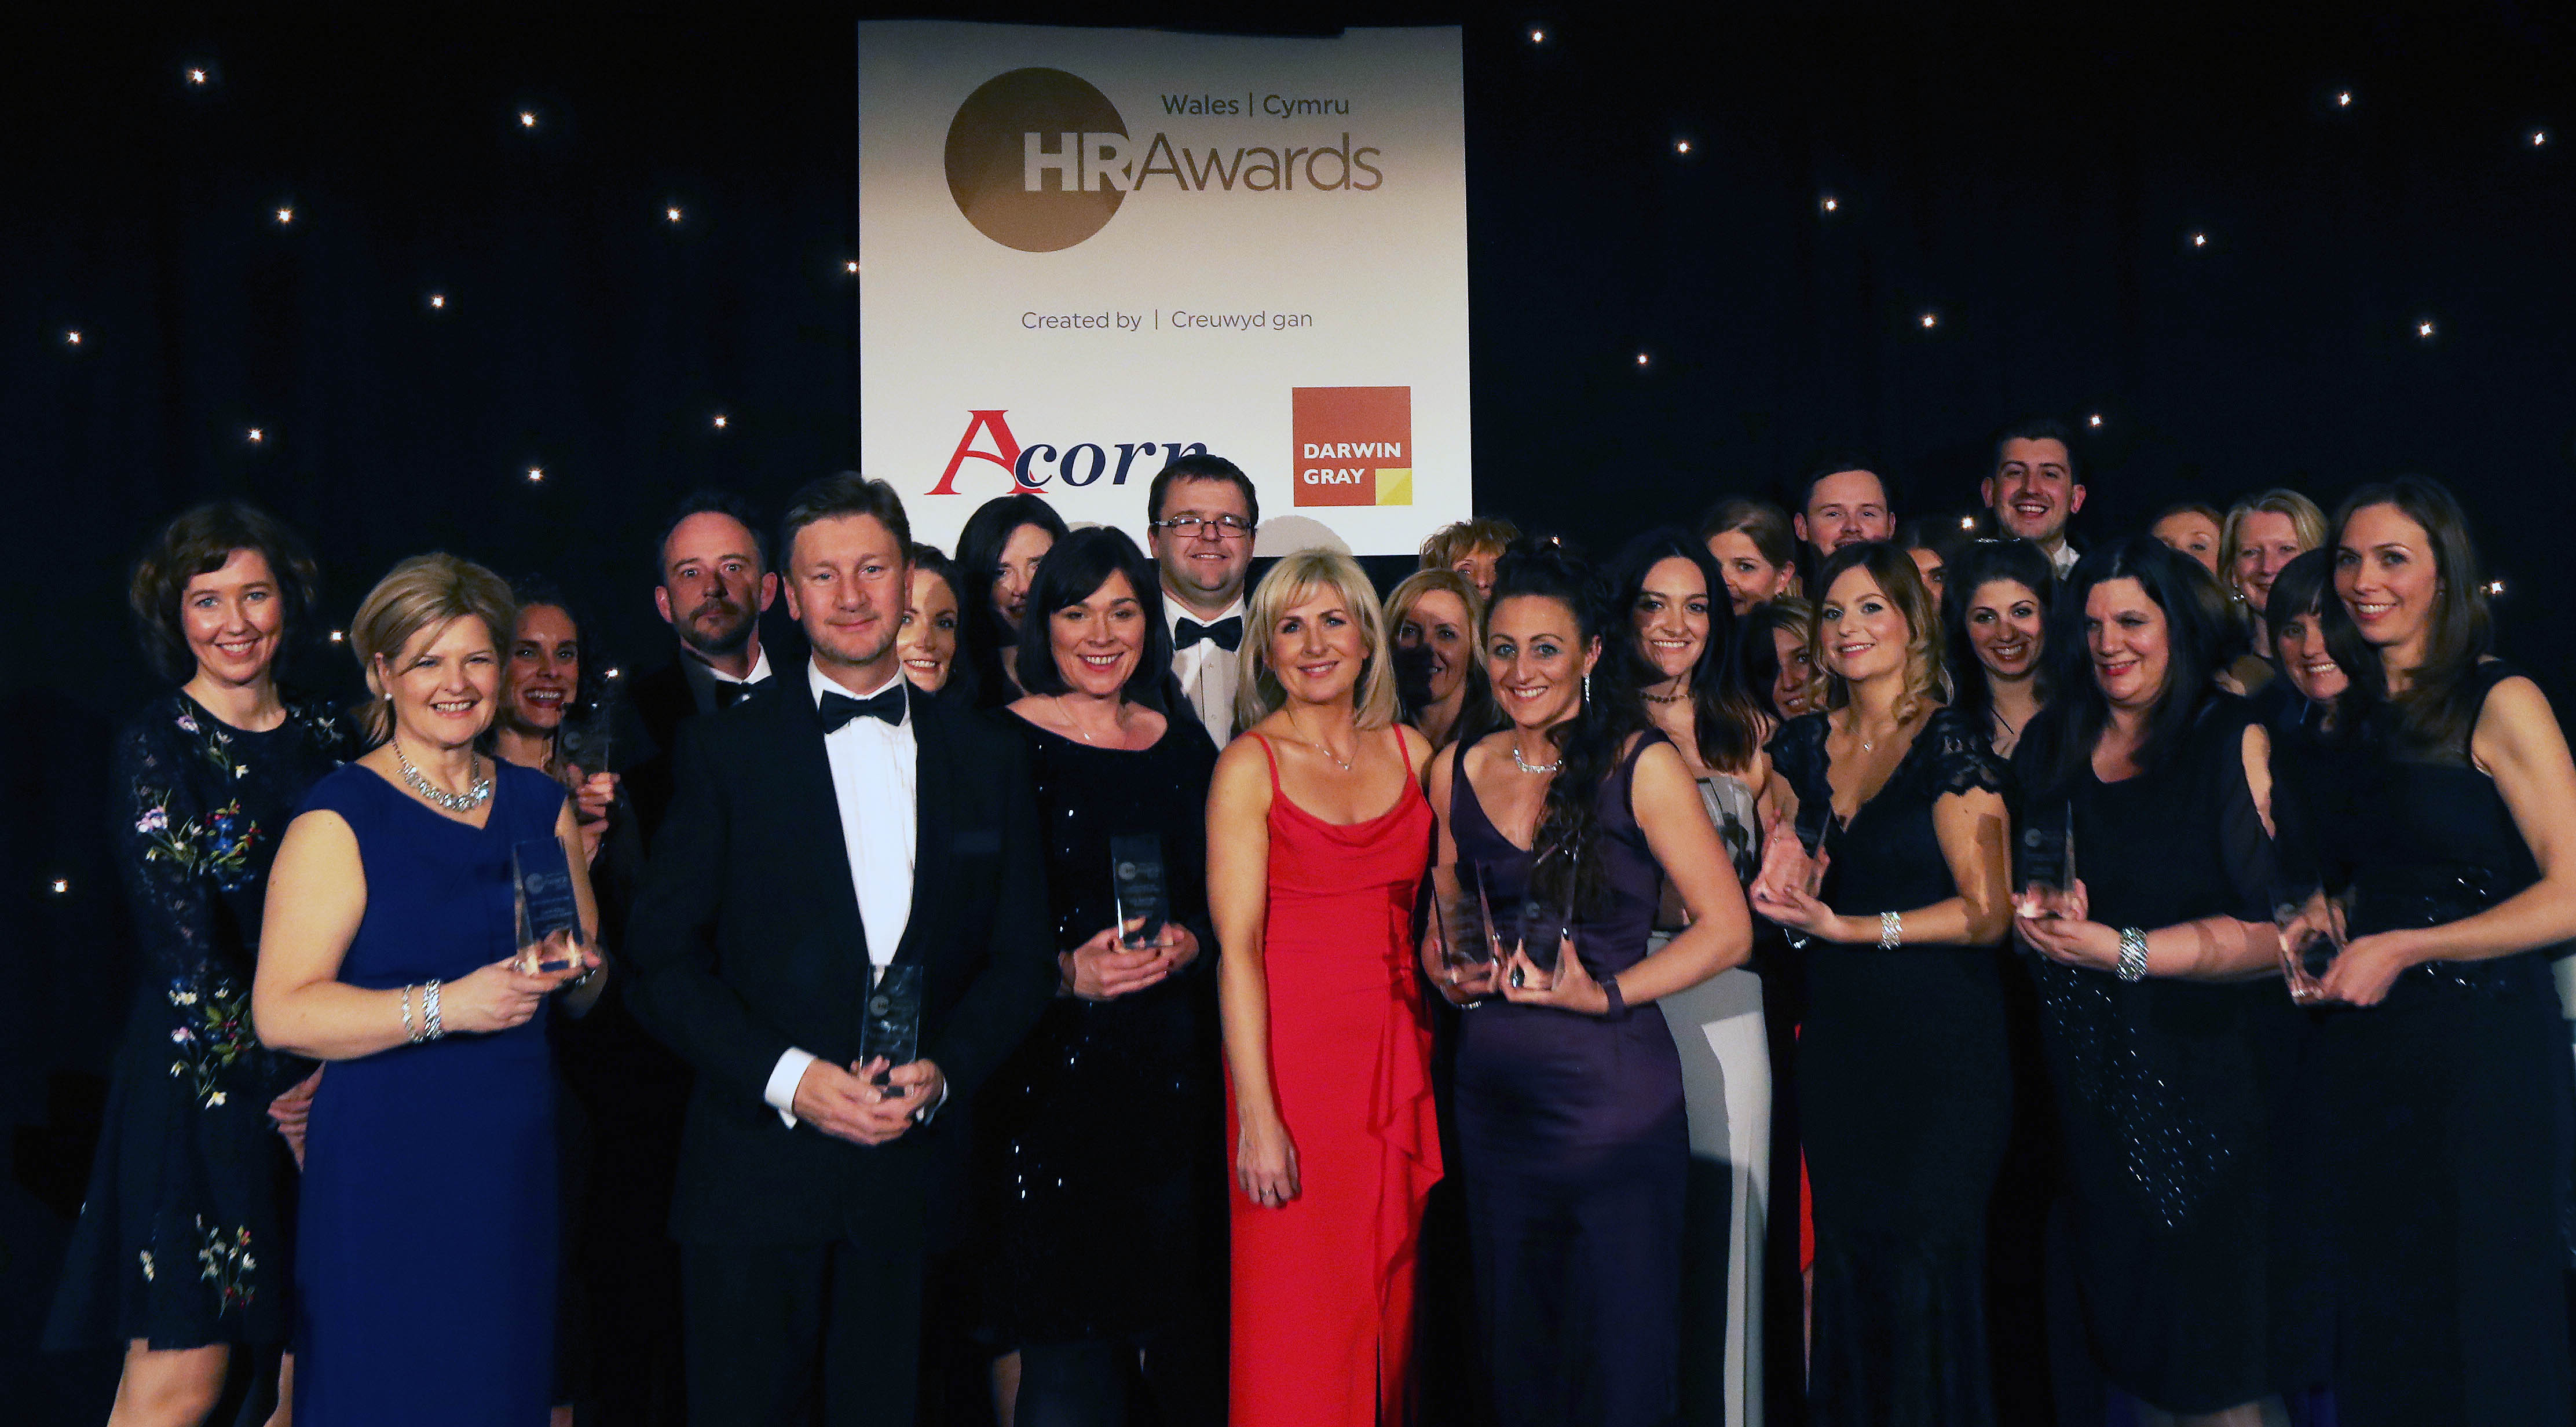 Wales HR Awards 2018 winners with host Sian Lloyd (1).JPG